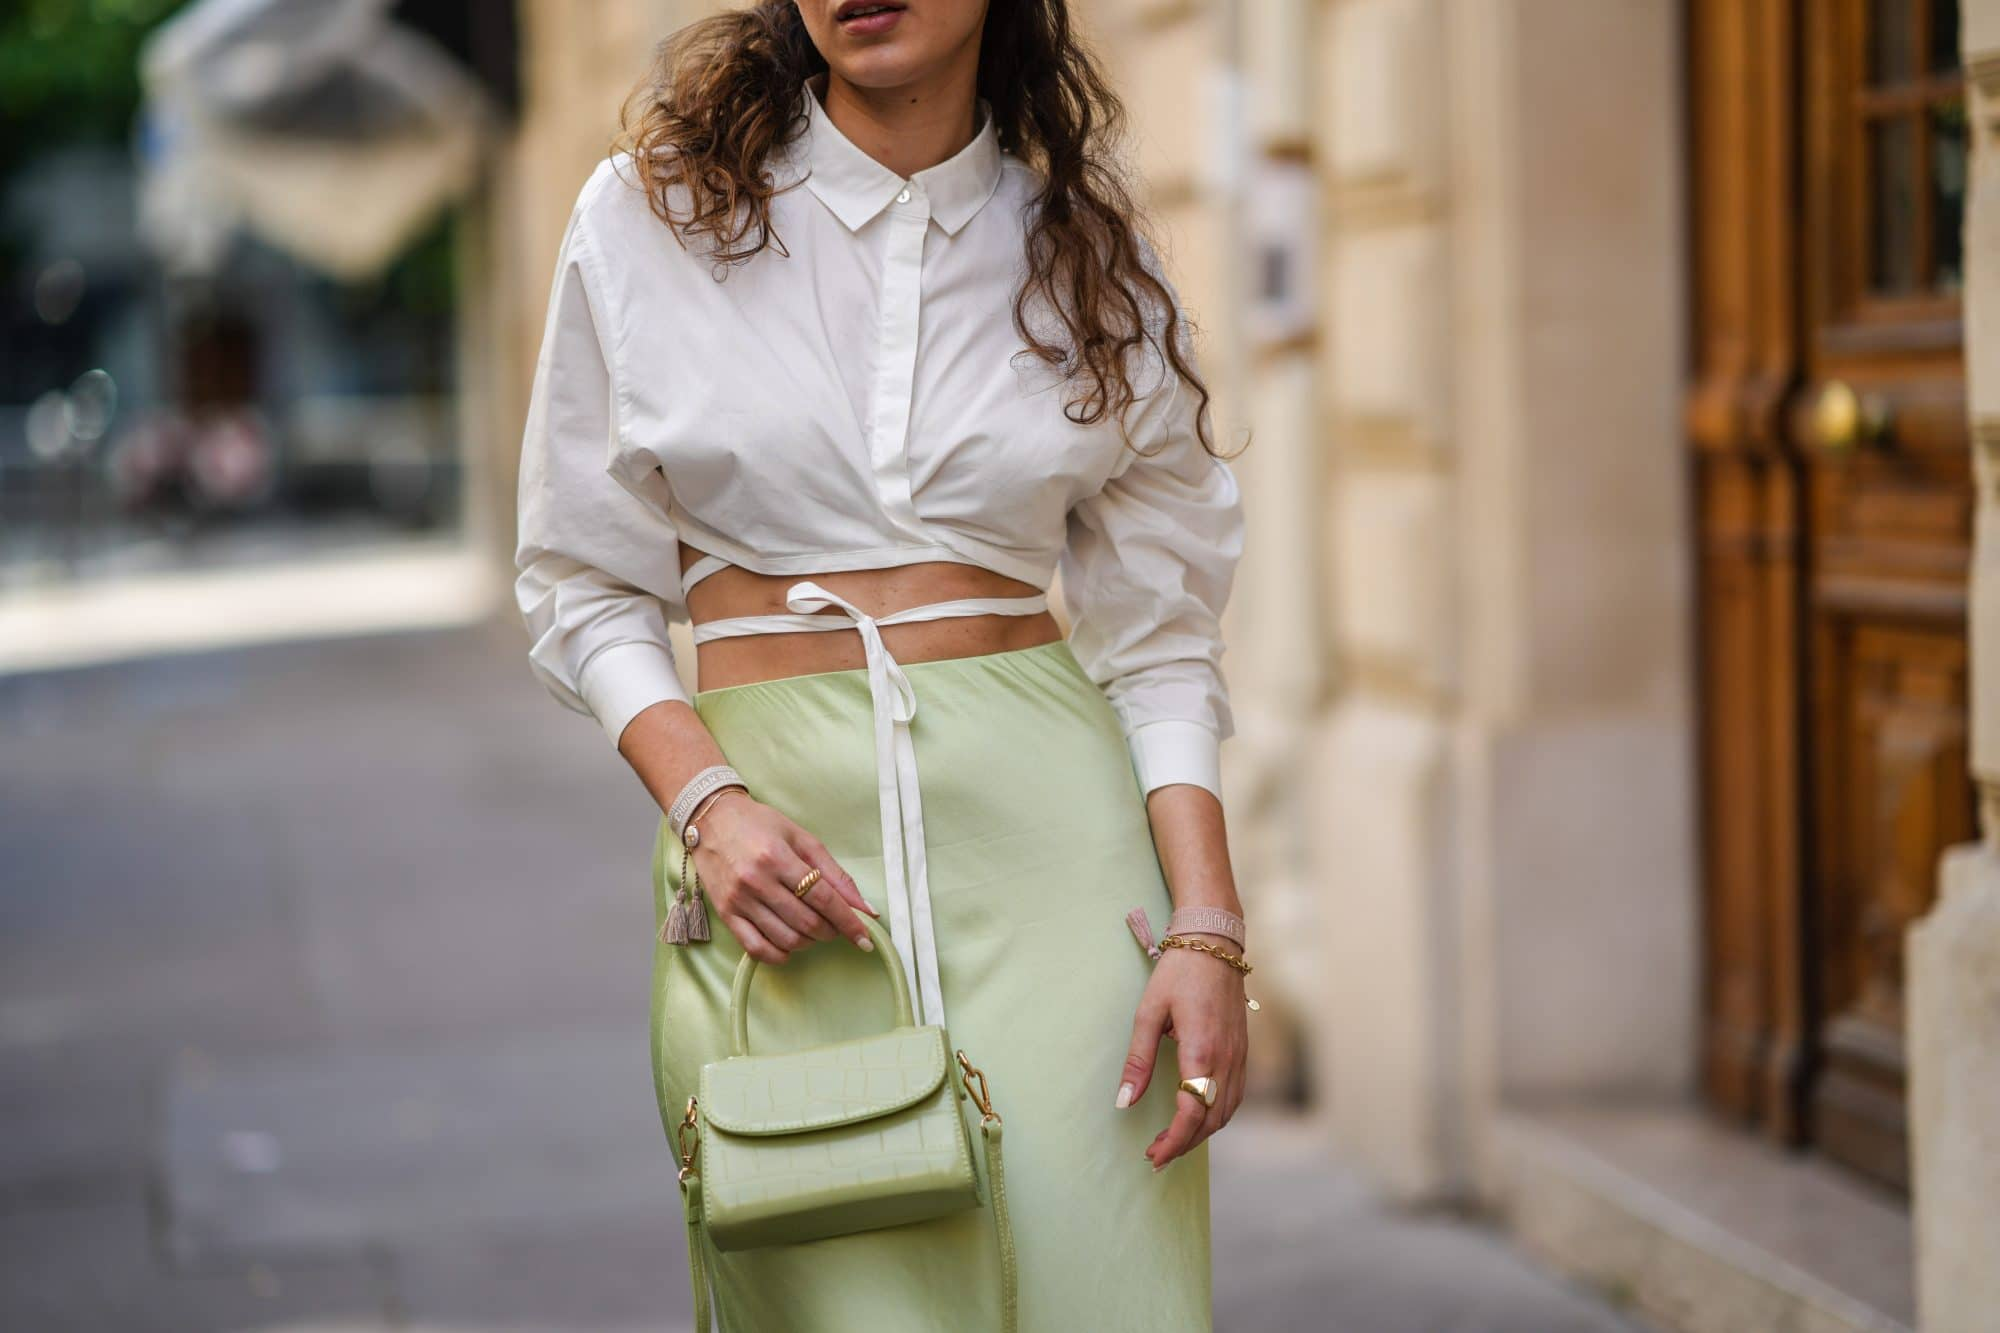 2021 Summer Fashion Trends, 2021 Summer Fashion Trends: Must-have Trendy Pieces for the Summer, Outdressing